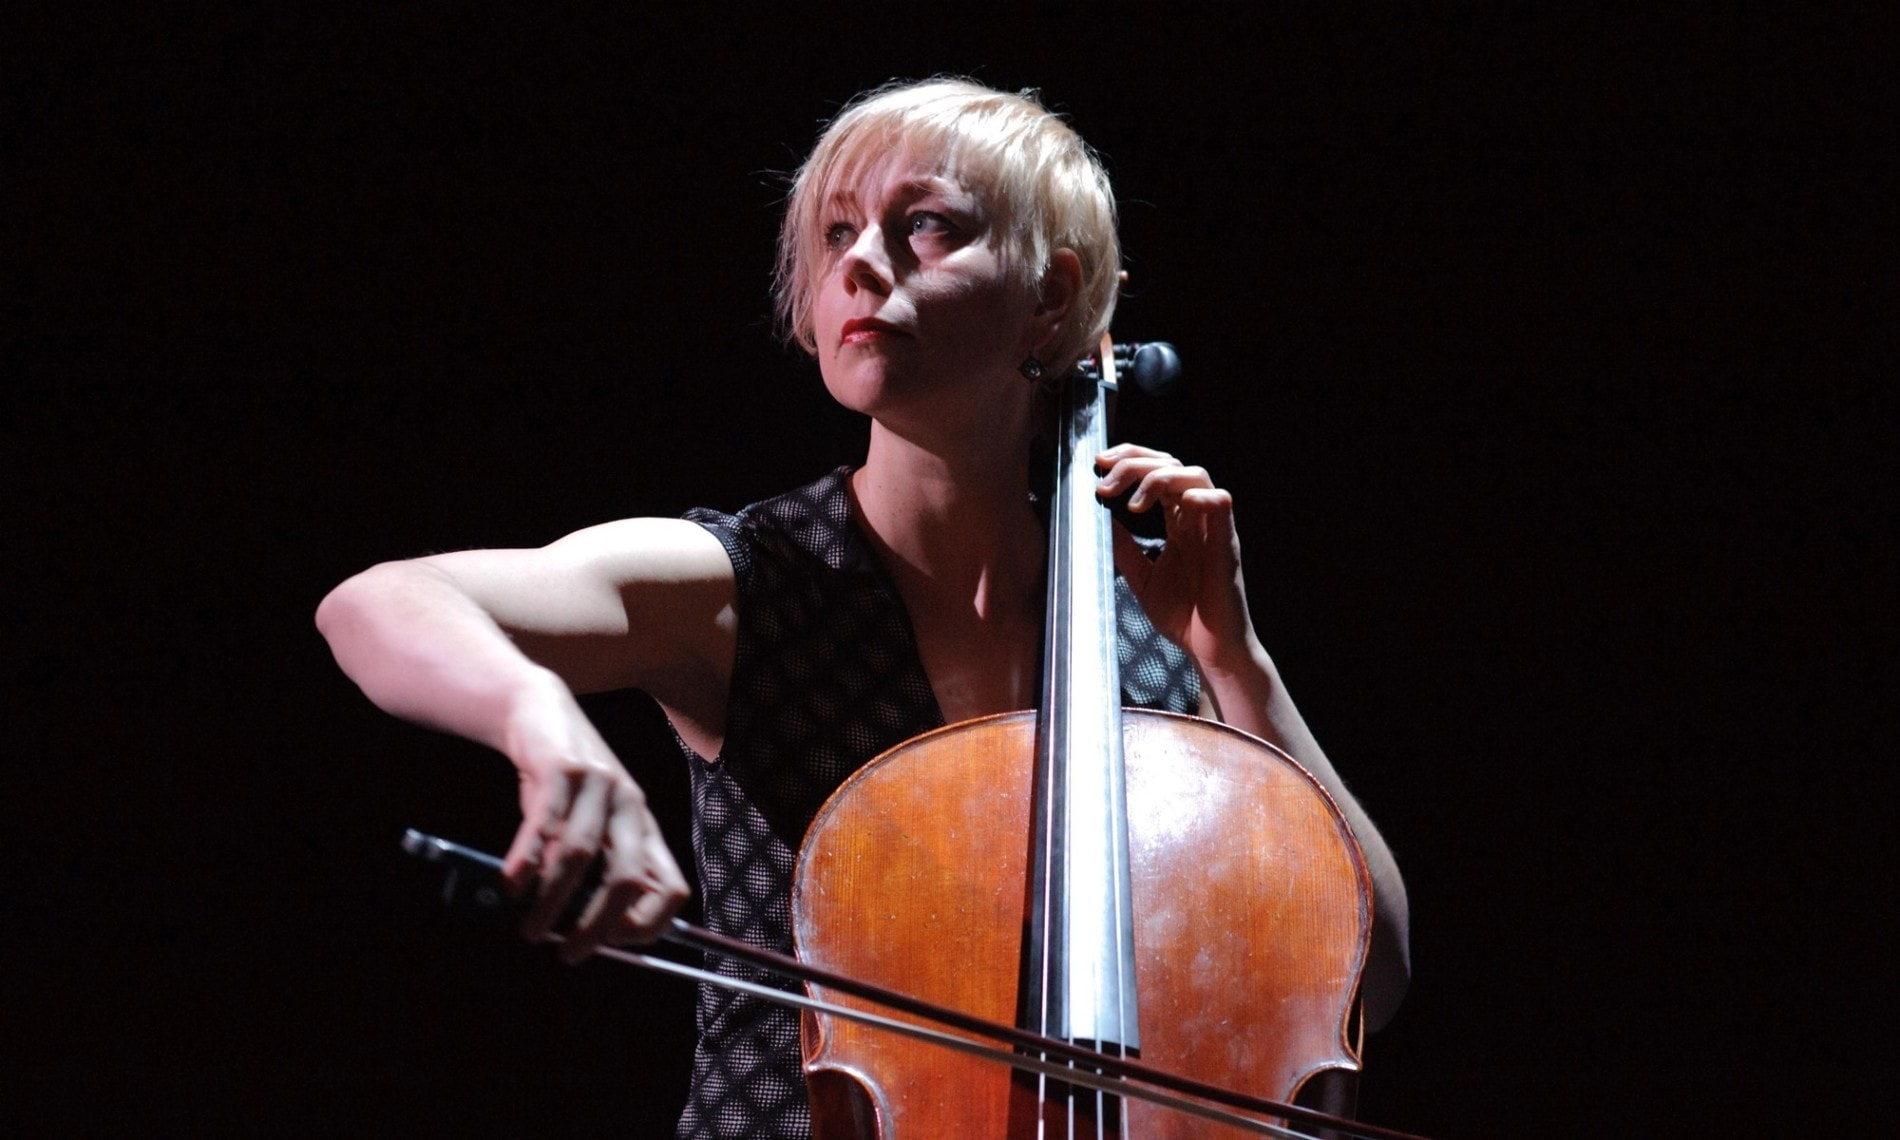 Jacqueline Hamelink cello